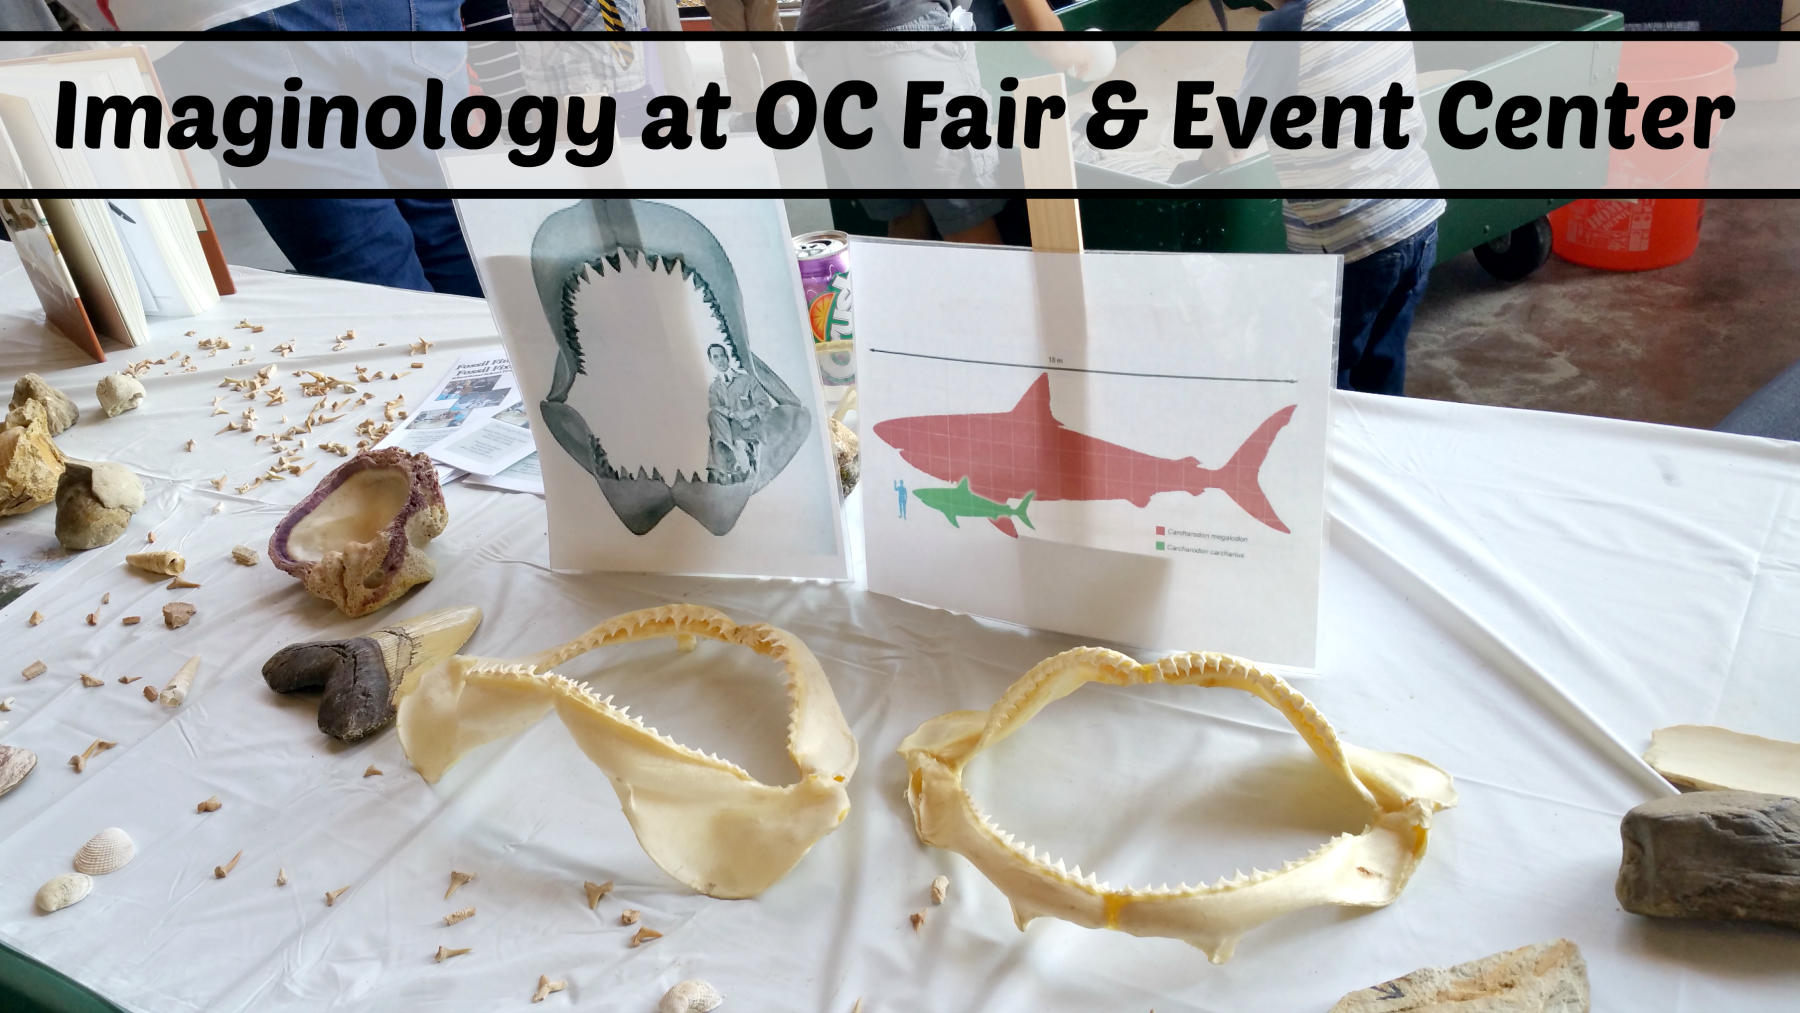 Imaginology at OC Fair and Event Center